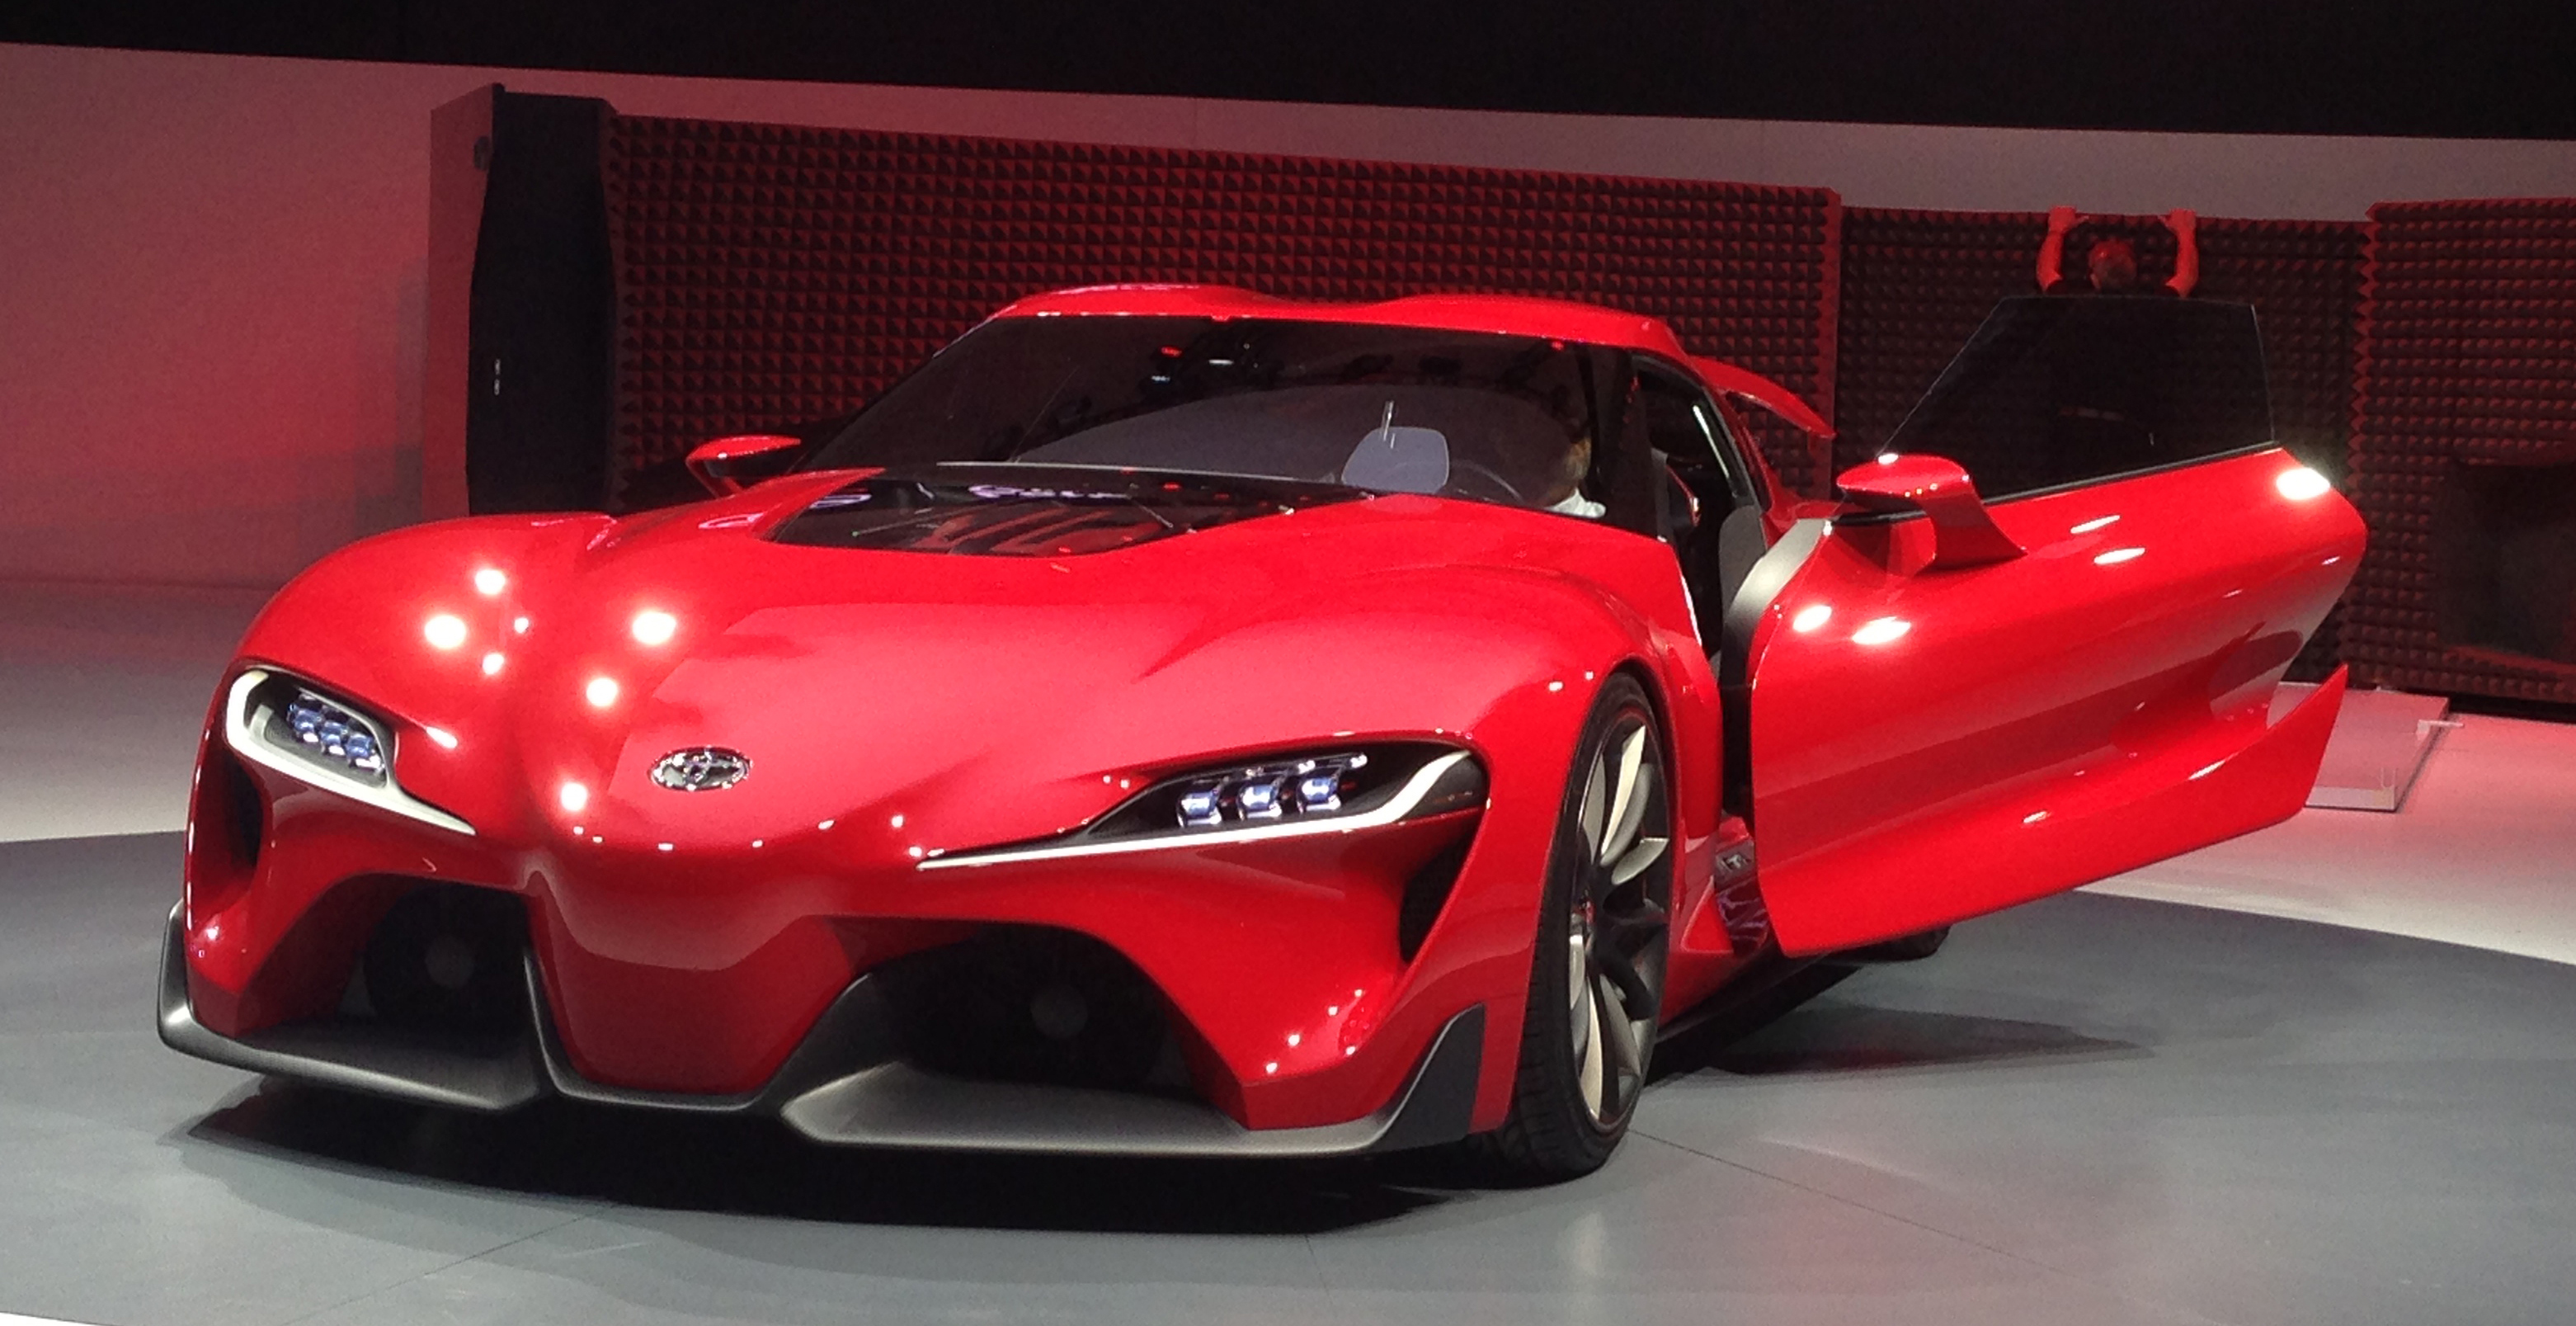 2018 Toyota Ft1 >> Toyota FT-1 concept shocks Detroit – the next Supra? Paul Tan - Image 221944